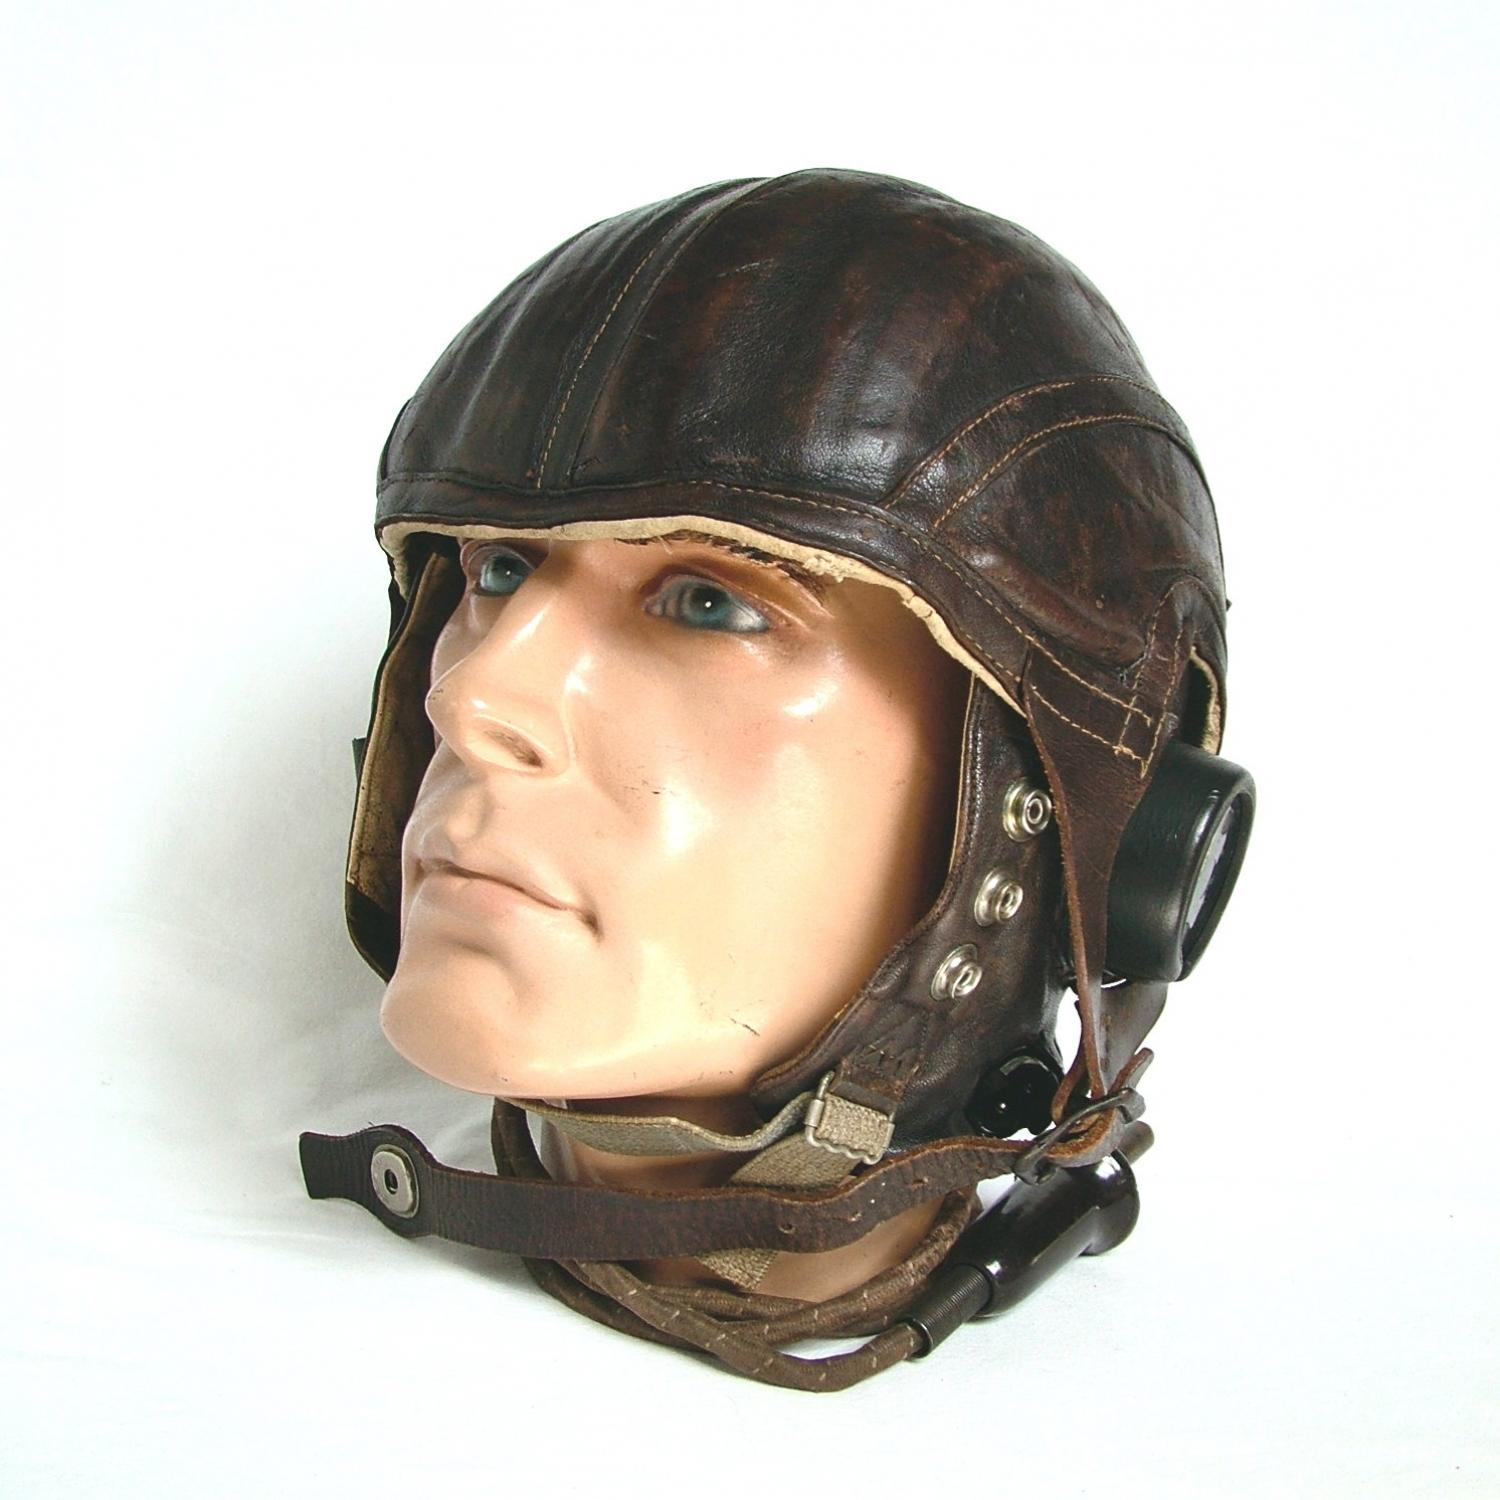 RAF / USAAF 'Grow' Anti-Flak Helmet